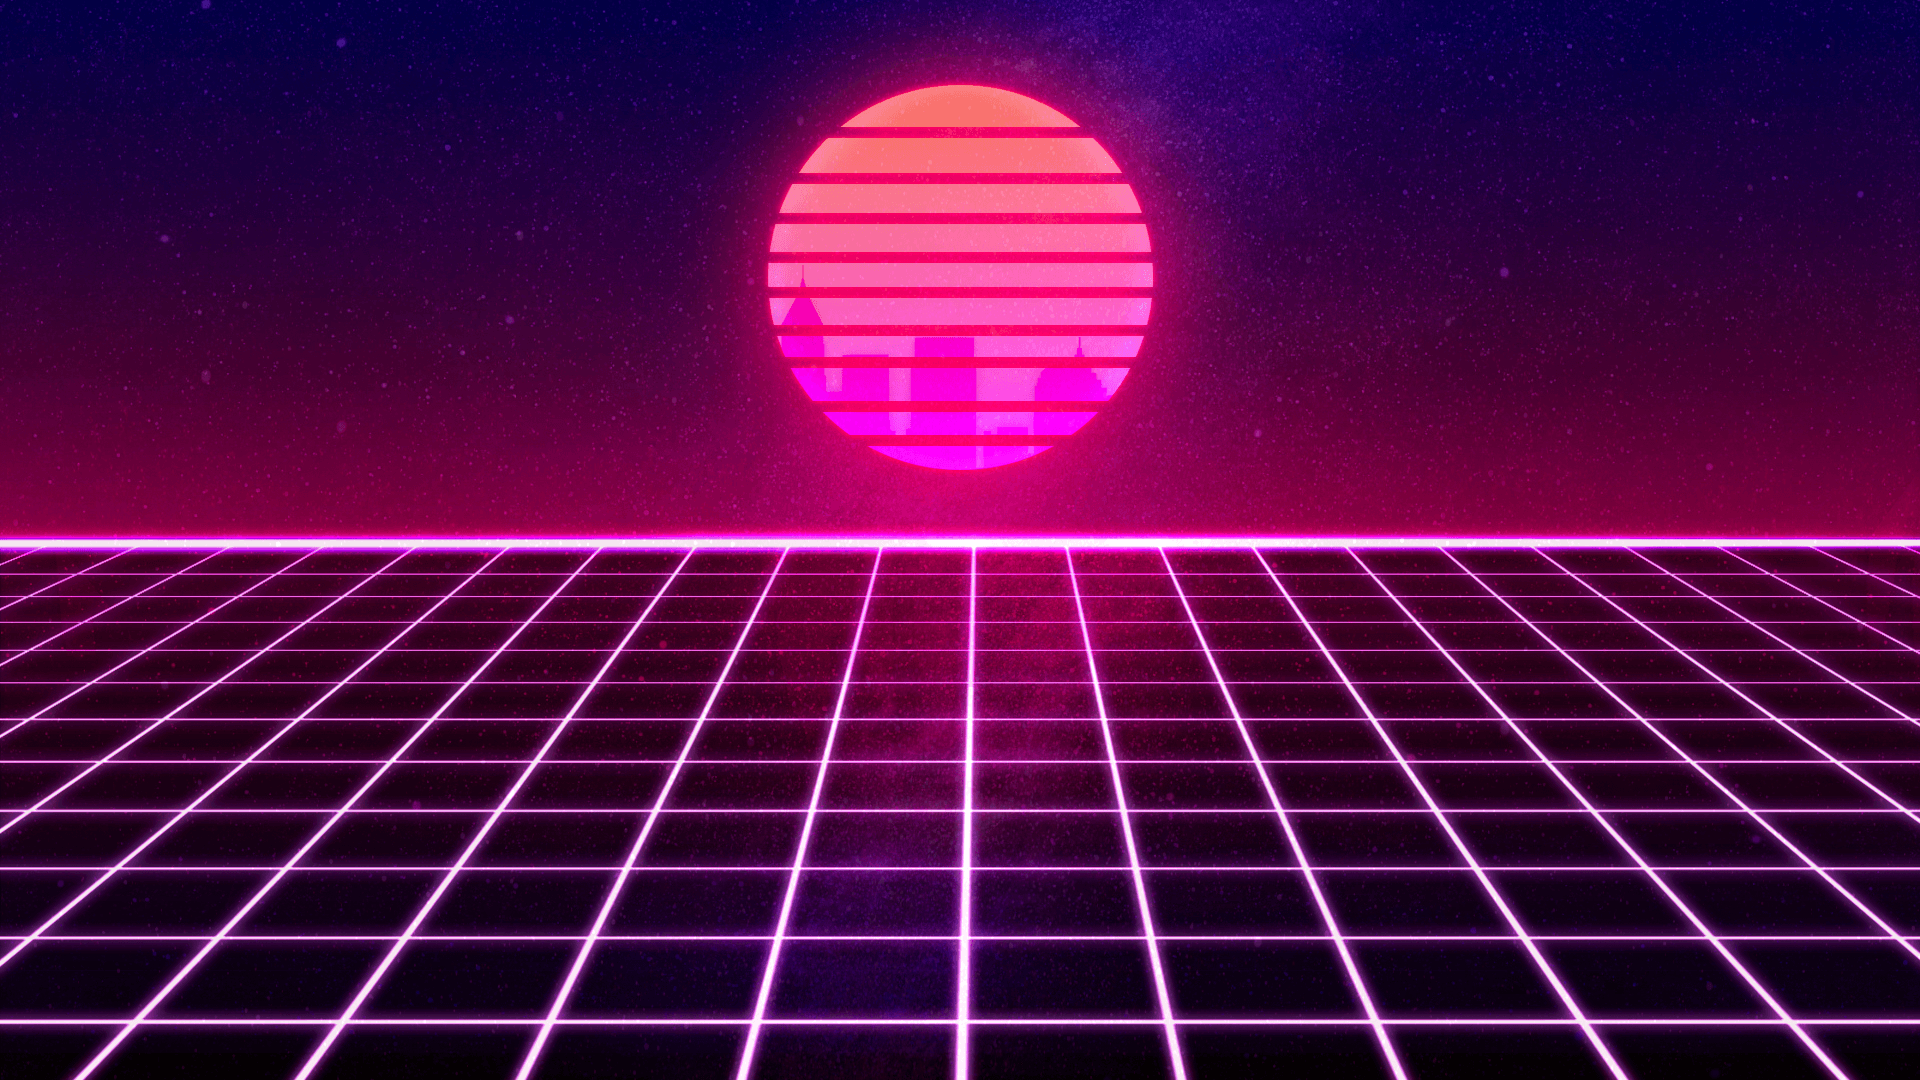 90s Aesthetic PS4 Wallpapers - Wallpaper Cave